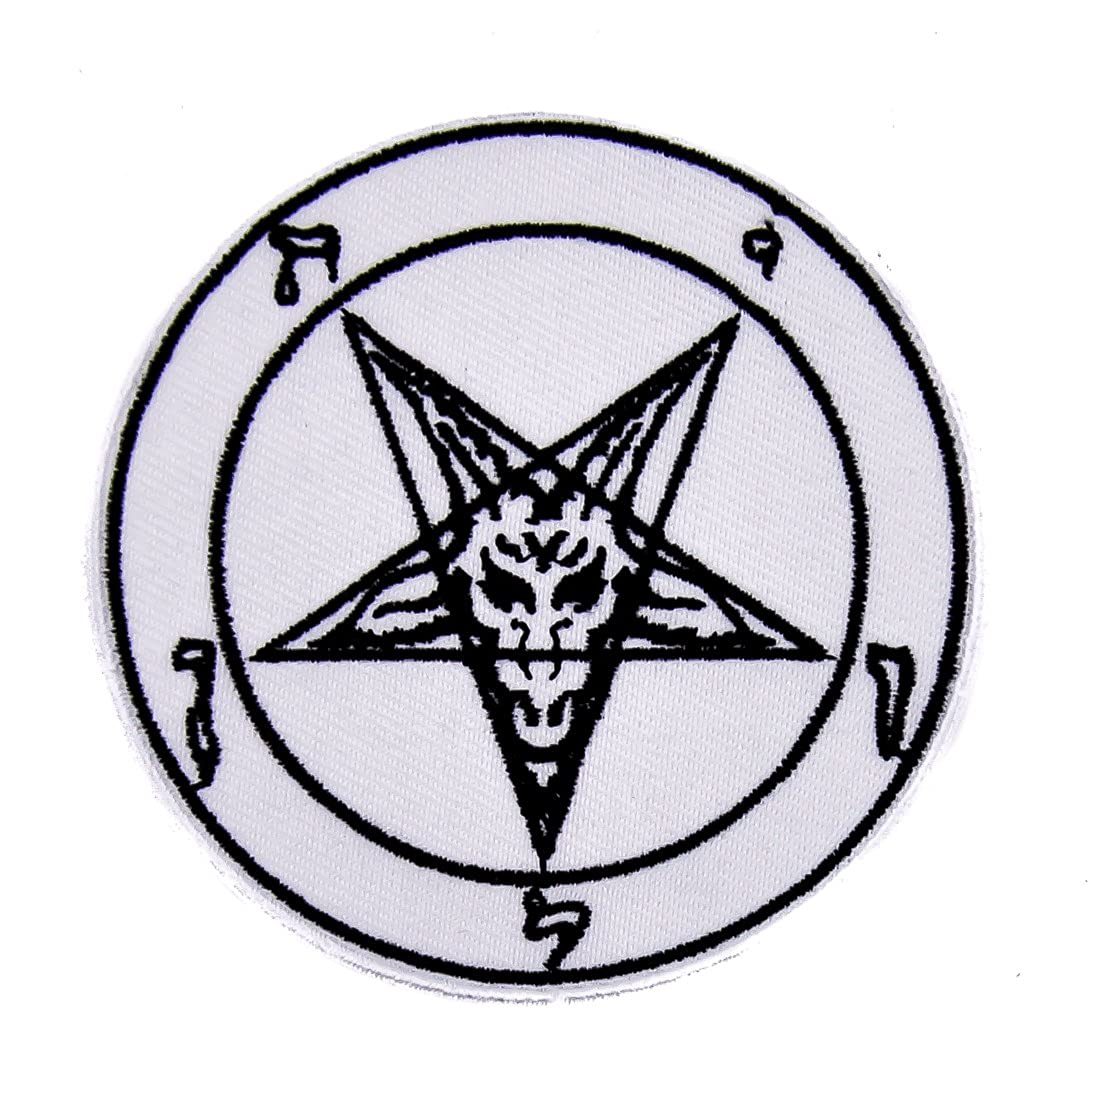 White Sabbatic Baphomet Goat Head Patch Iron on Applique Occult Clothing Satanic